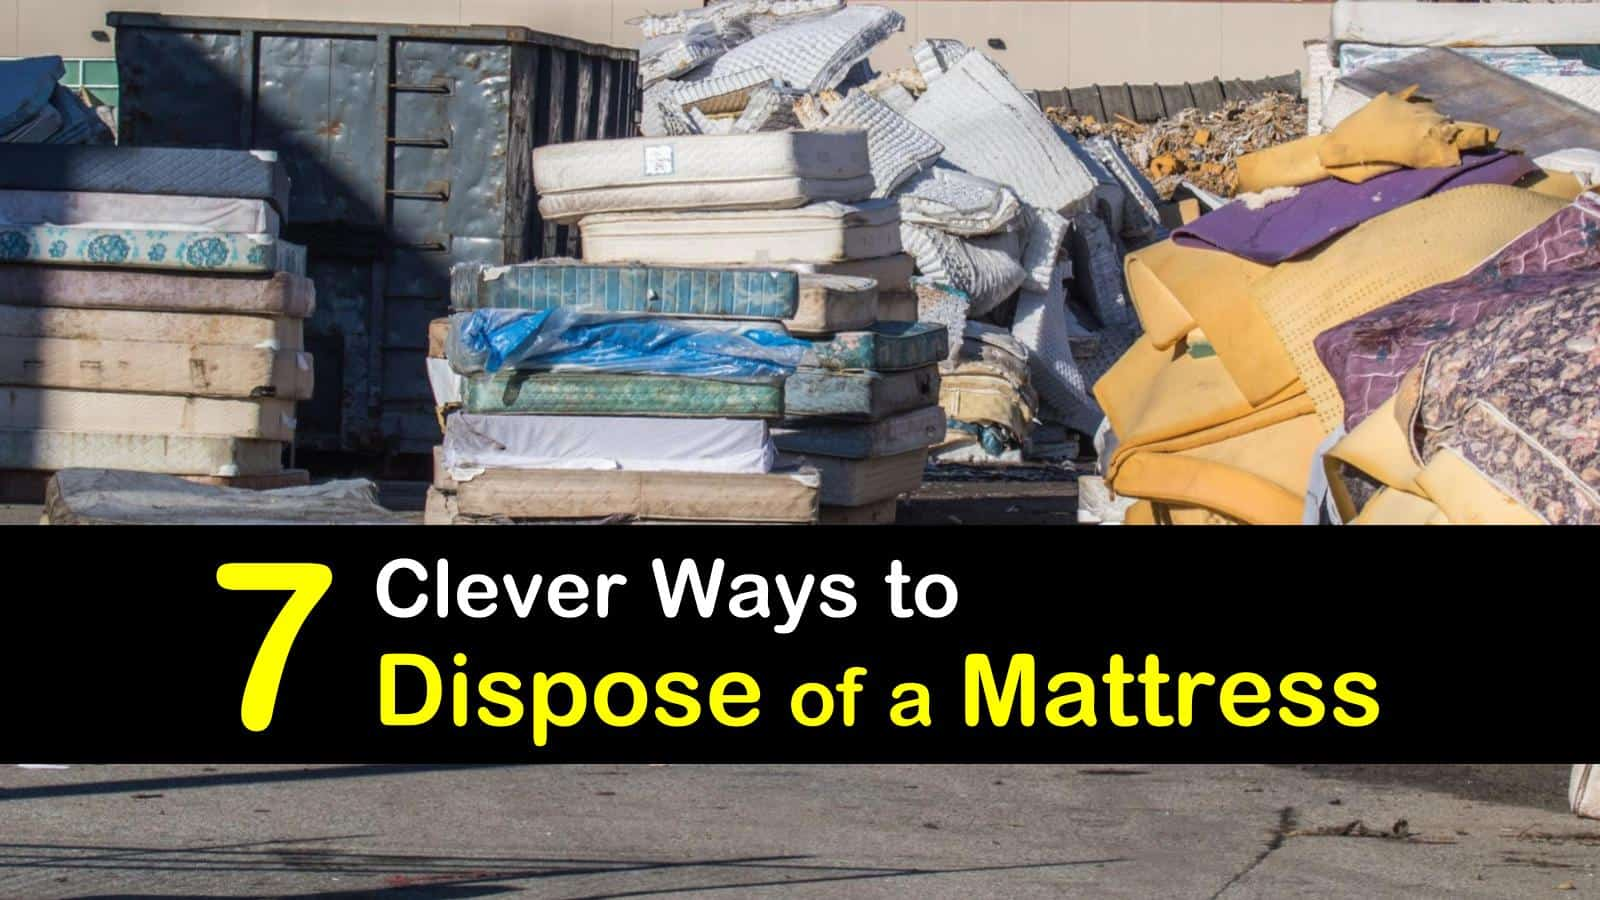 how to dispose of a mattress titleimg1